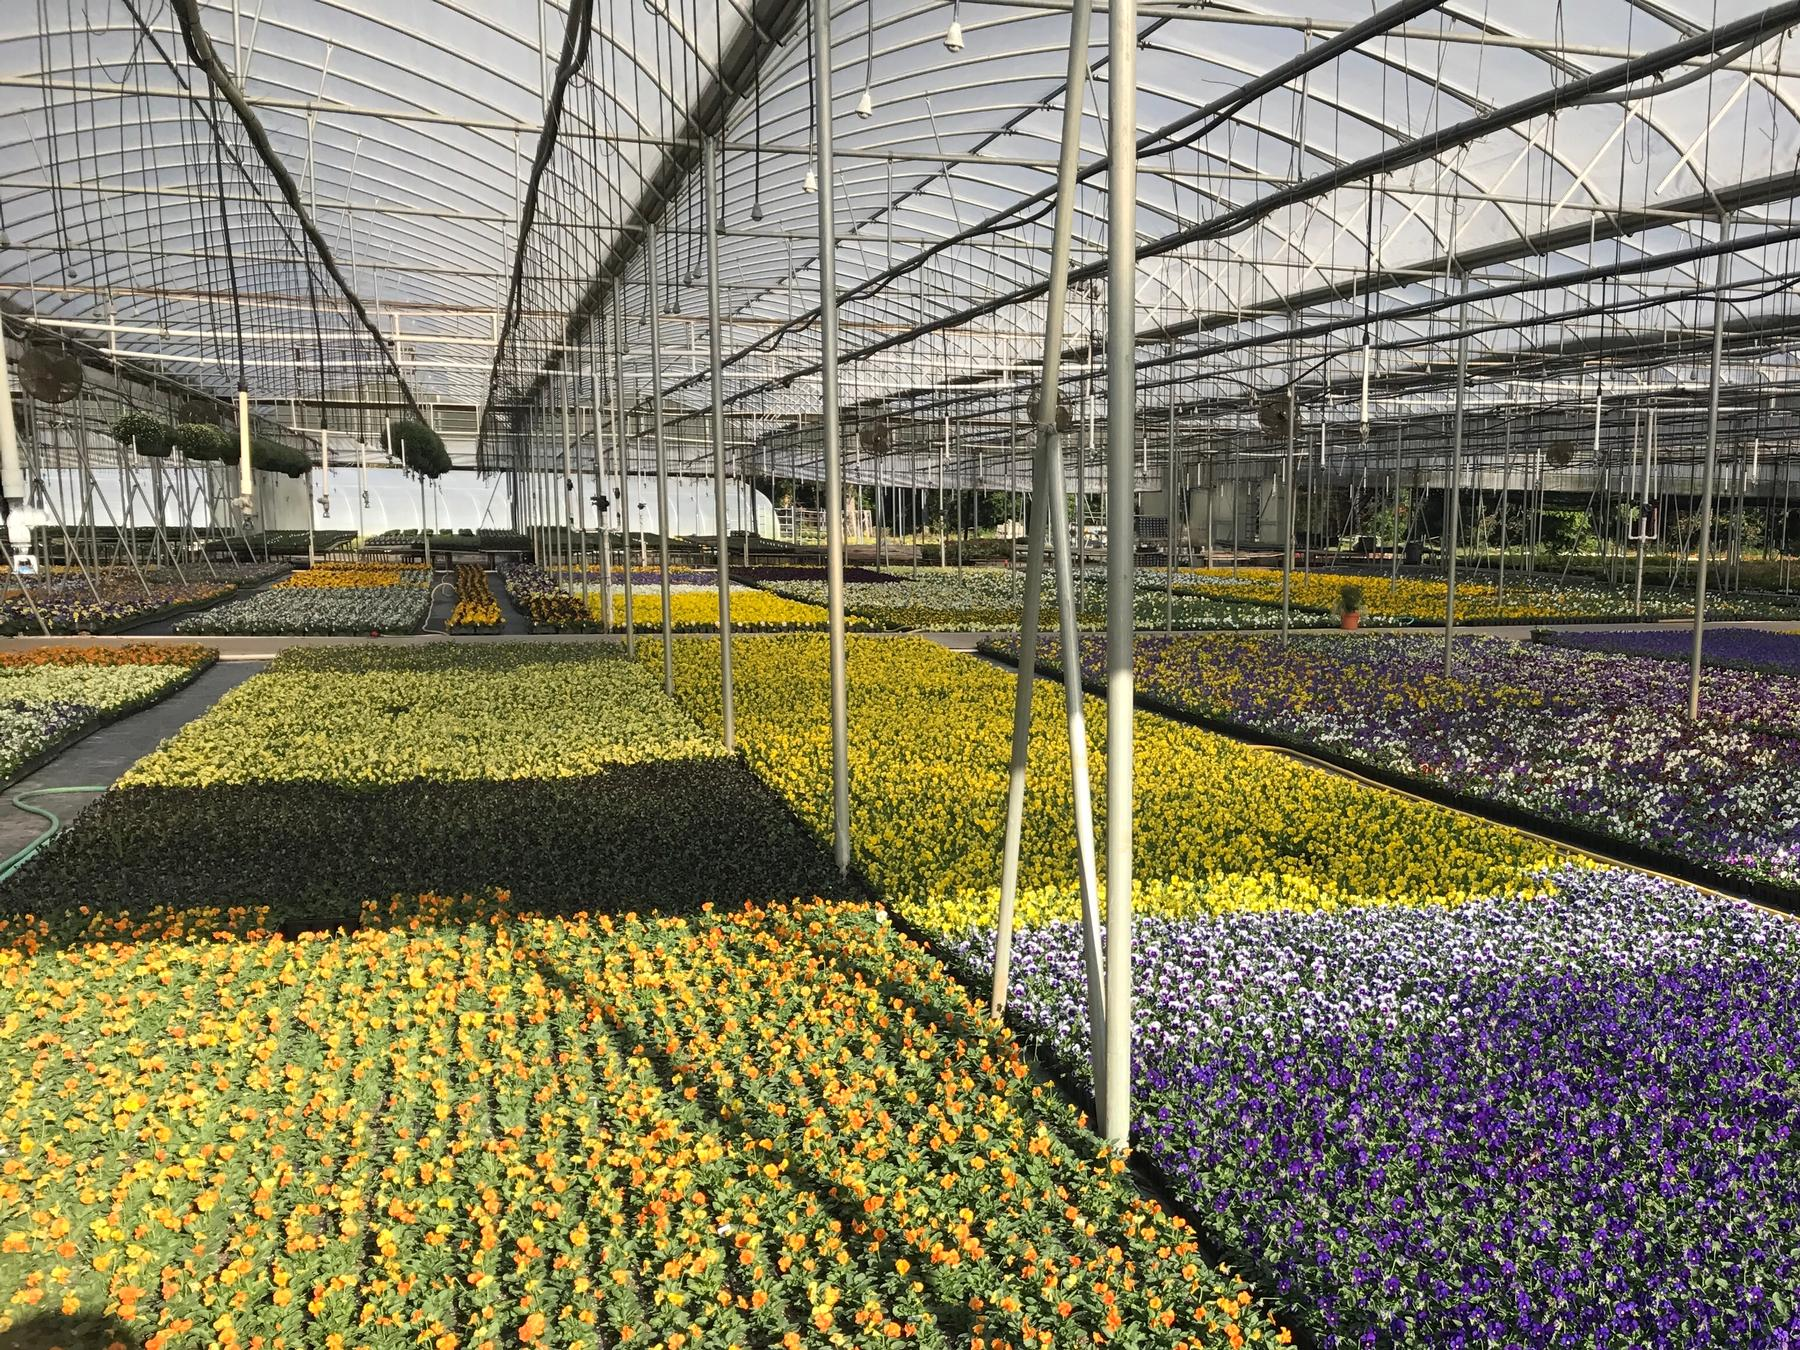 King S Greenhouse Growing Range And Whole Operation